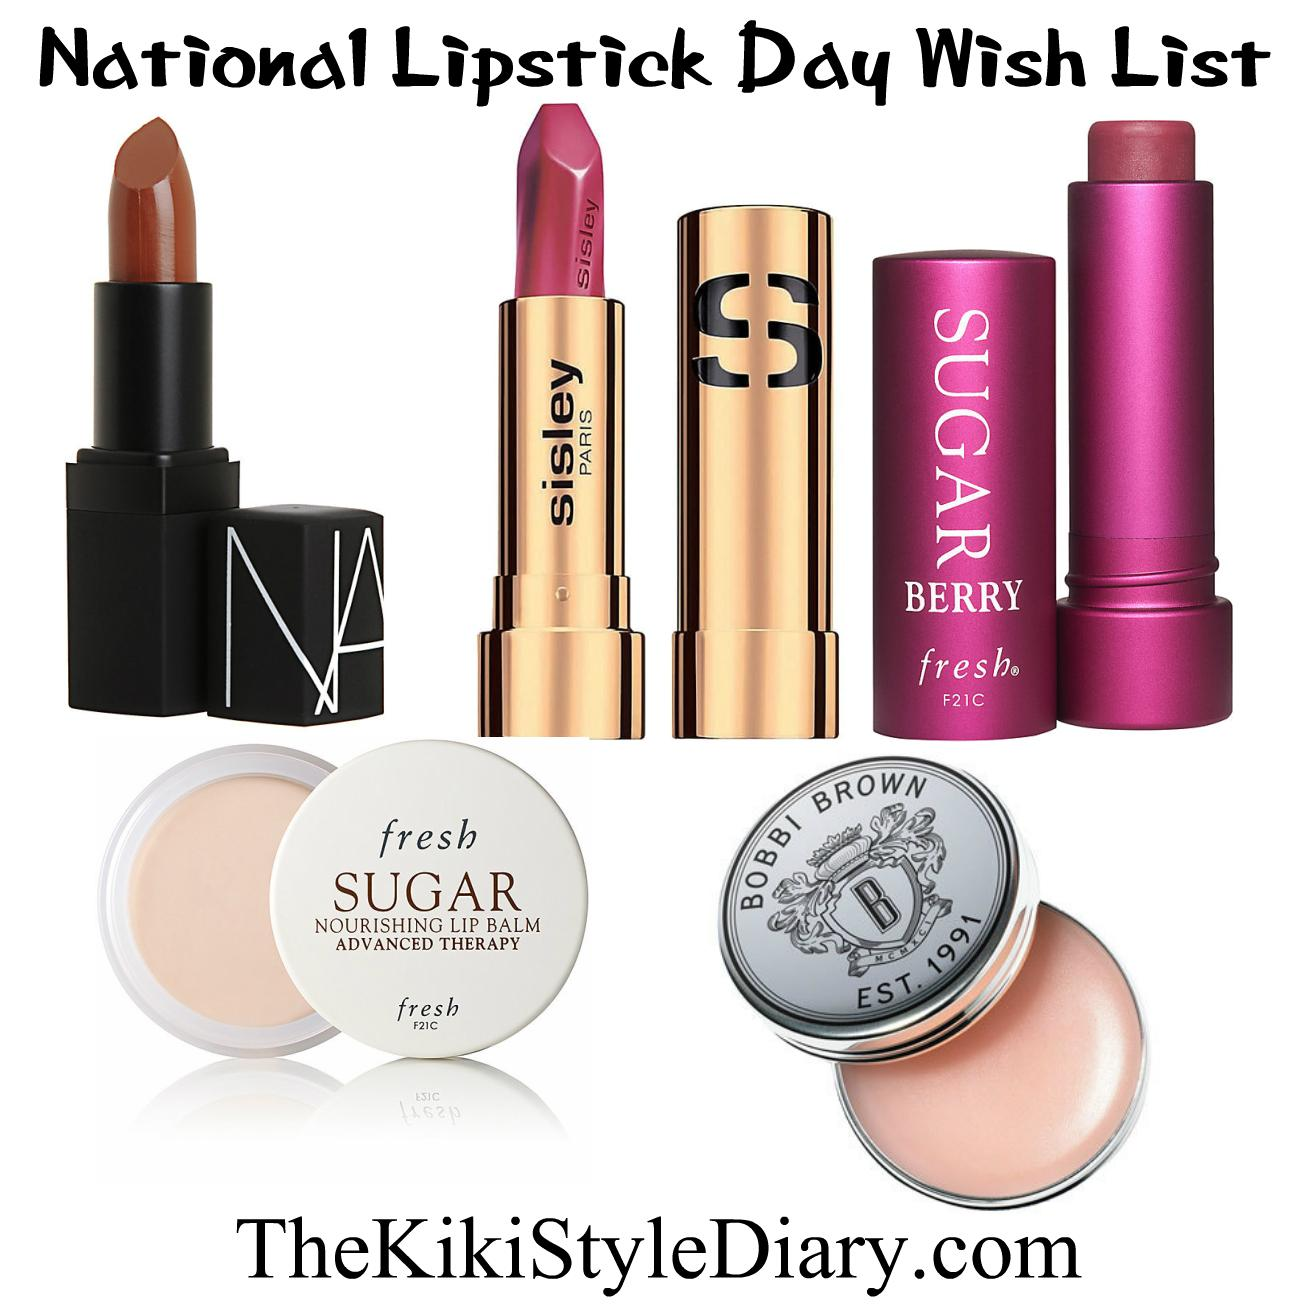 National Lipstick Day Wish List